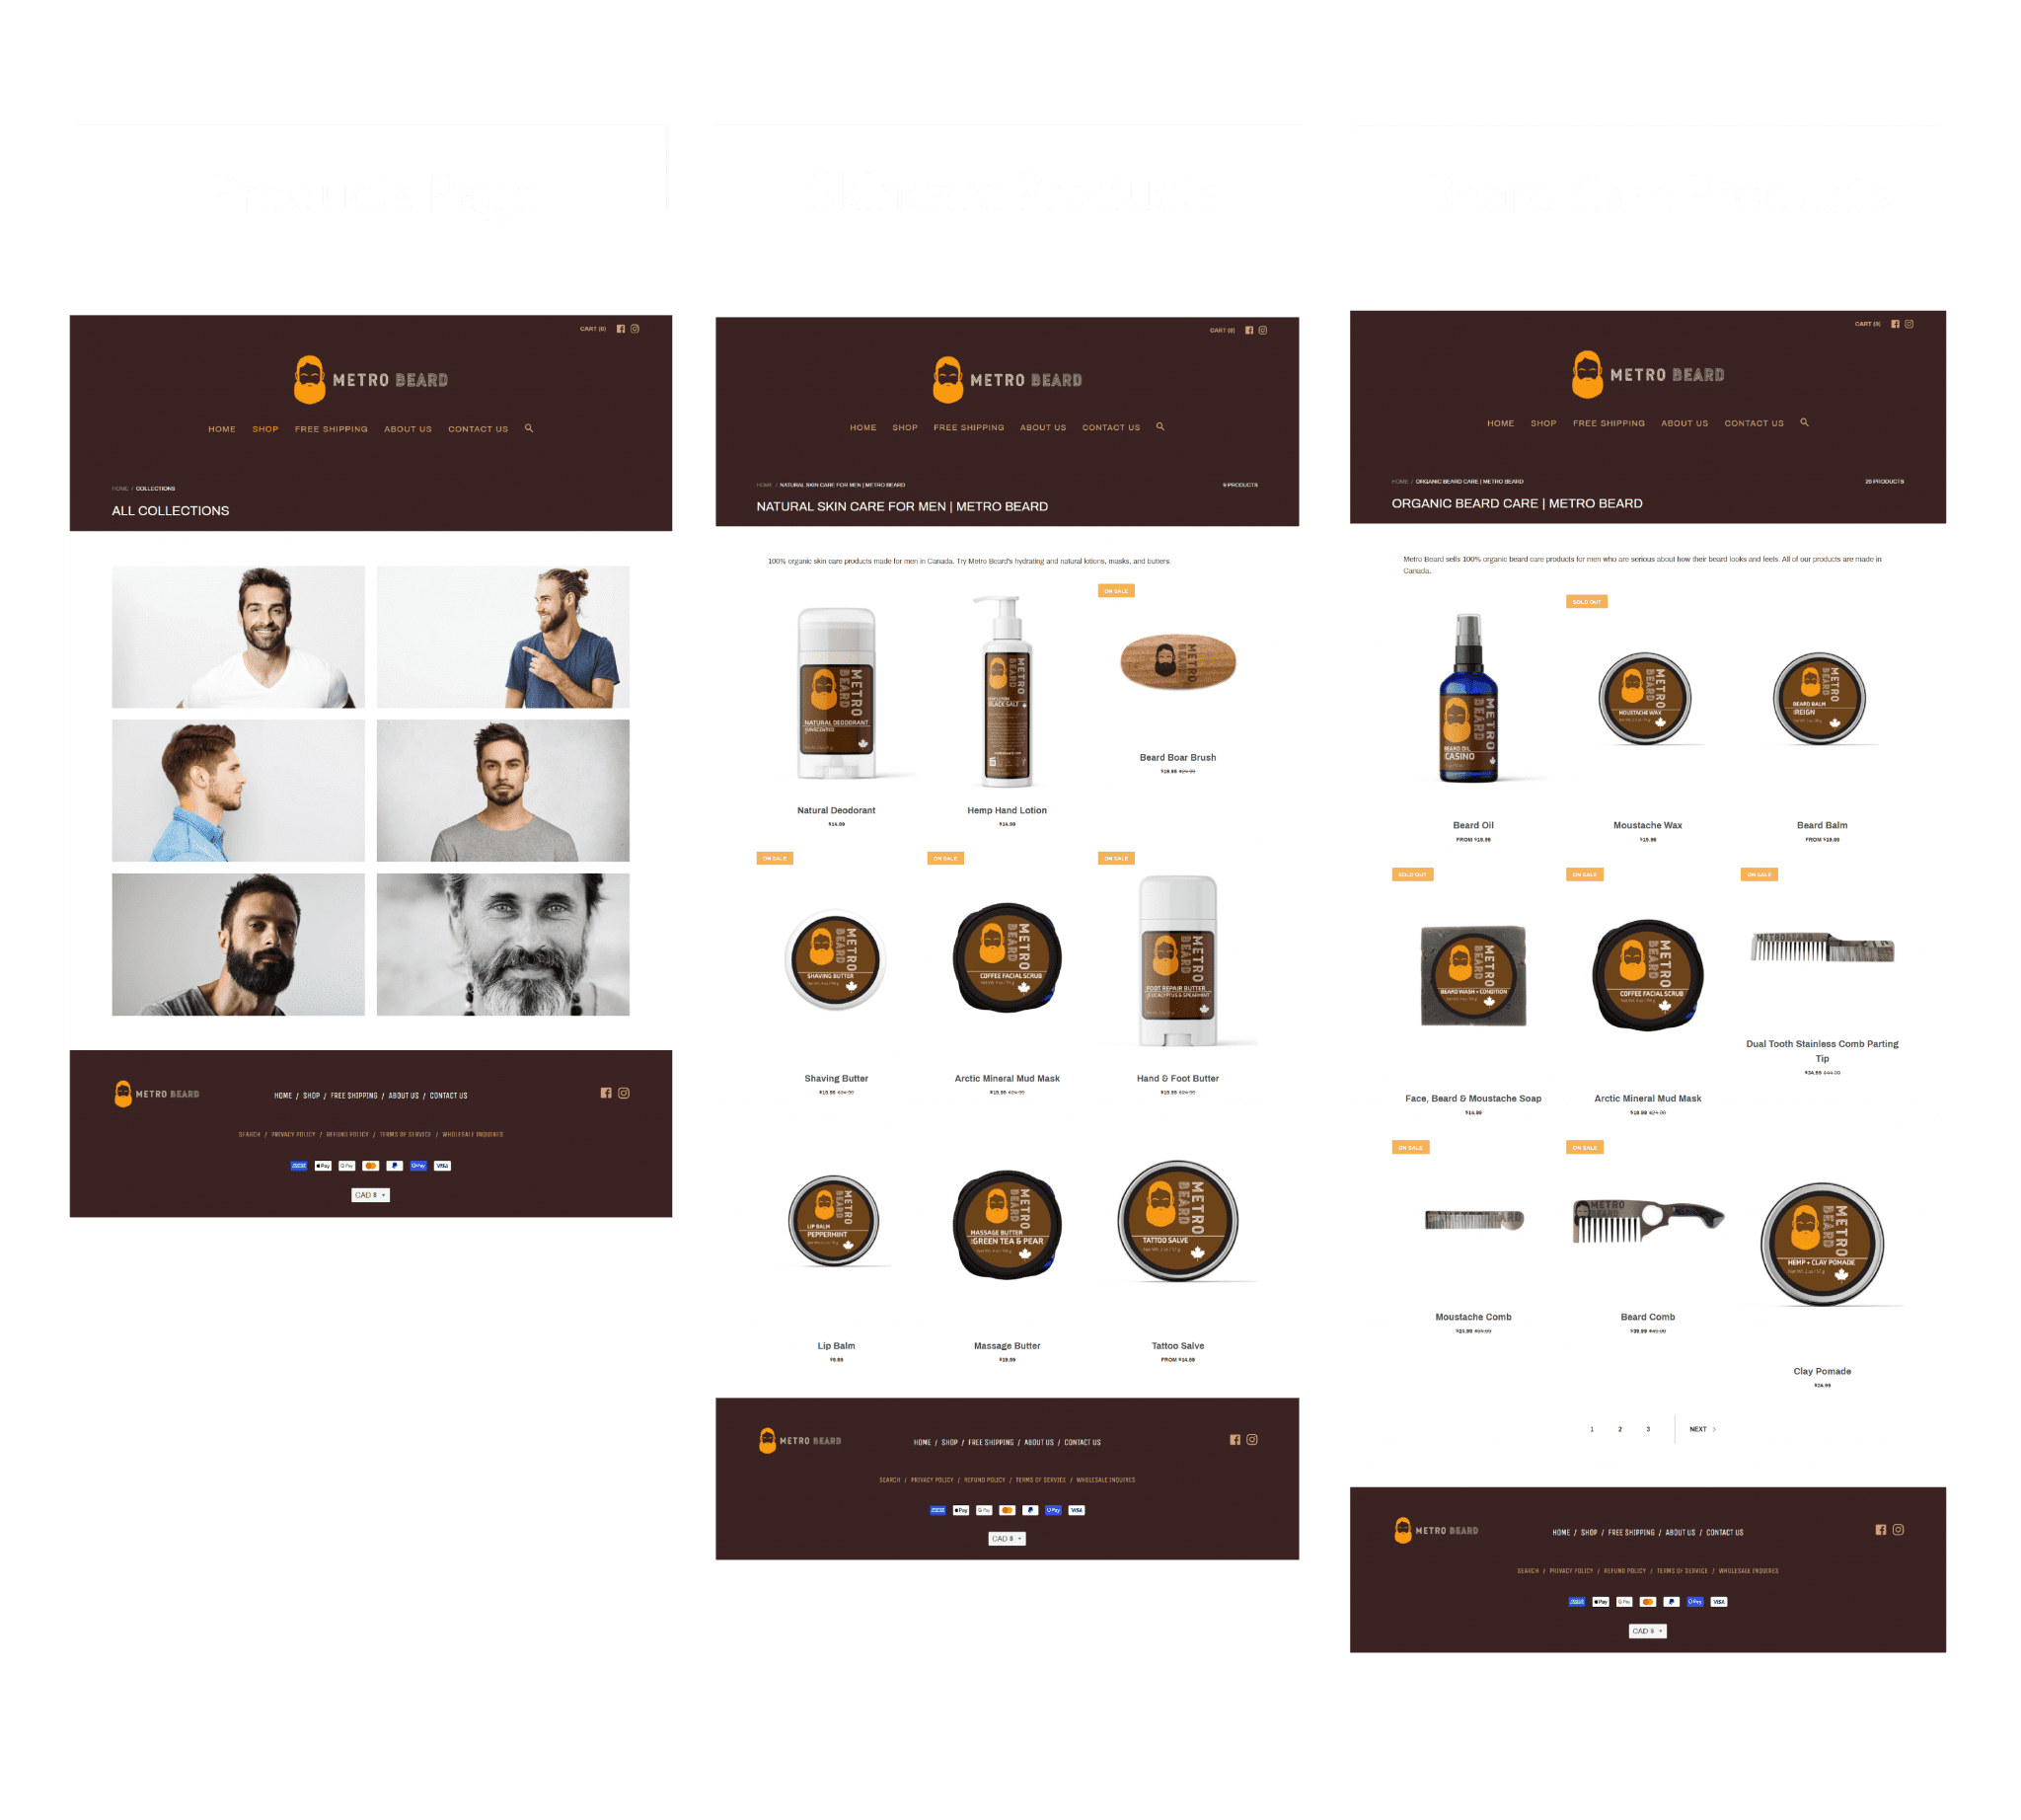 screenshots of the products page, organic beard care page, and natural hair care products page on the metro beard website